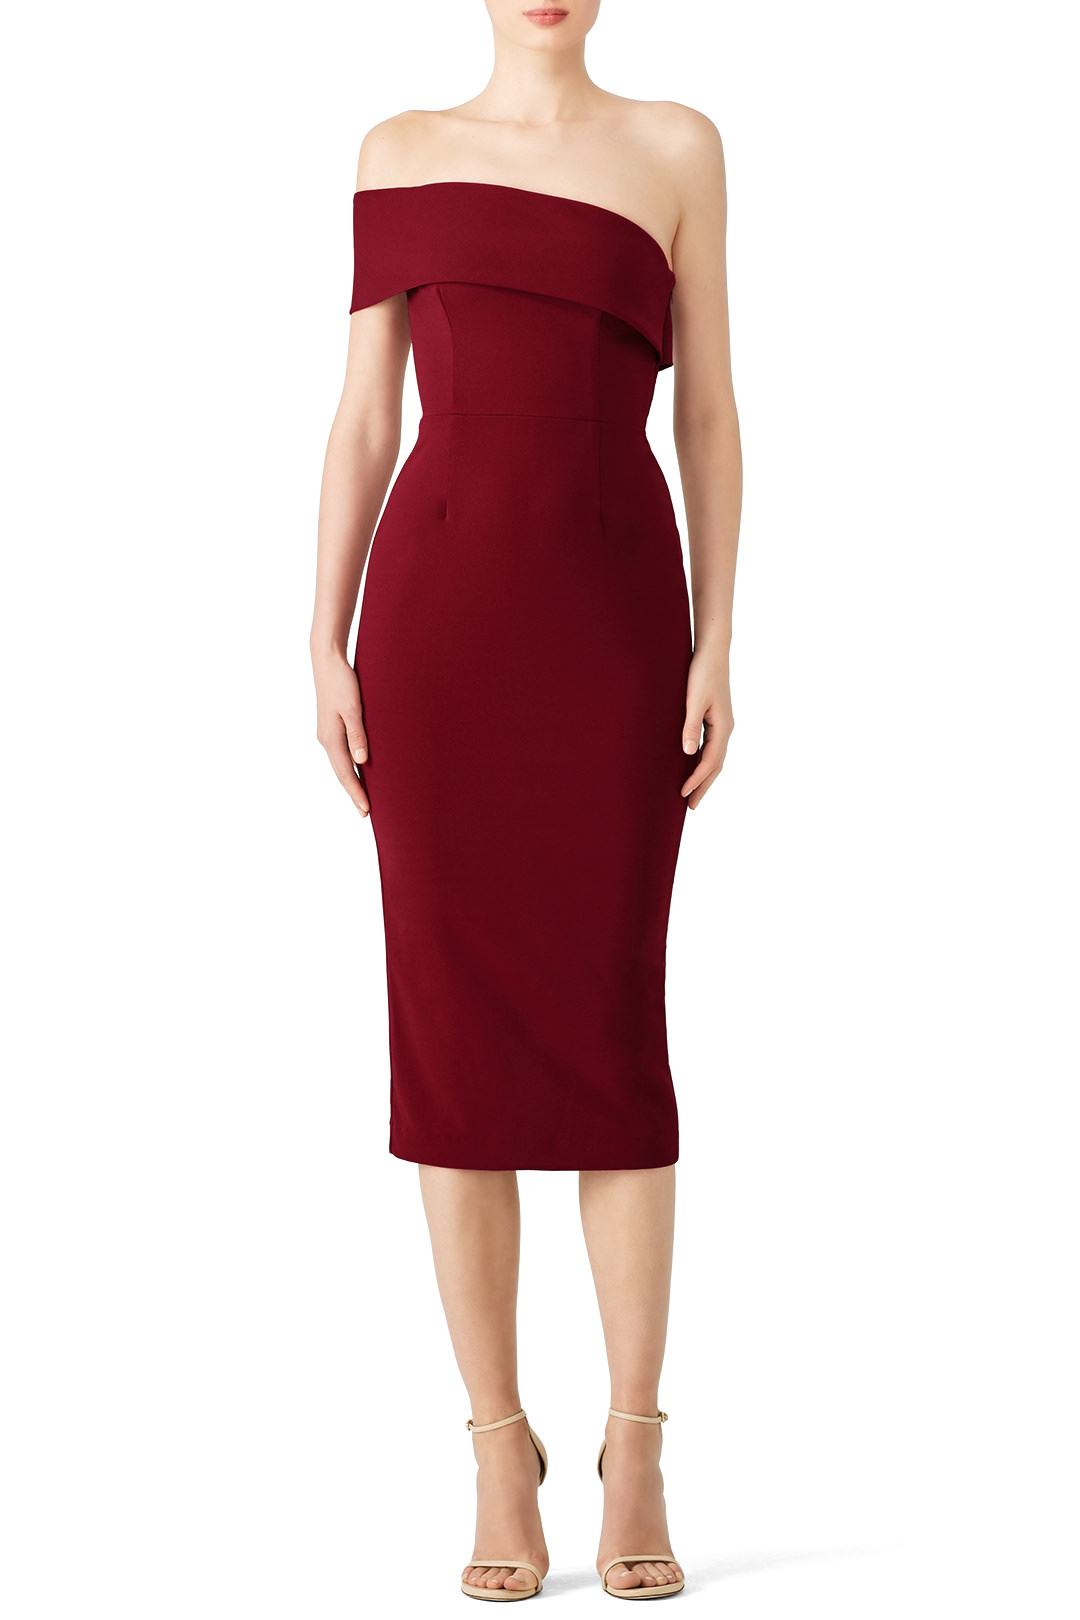 Katie May Bordeaux Apollo Dress - Show a little leg why don't ya?